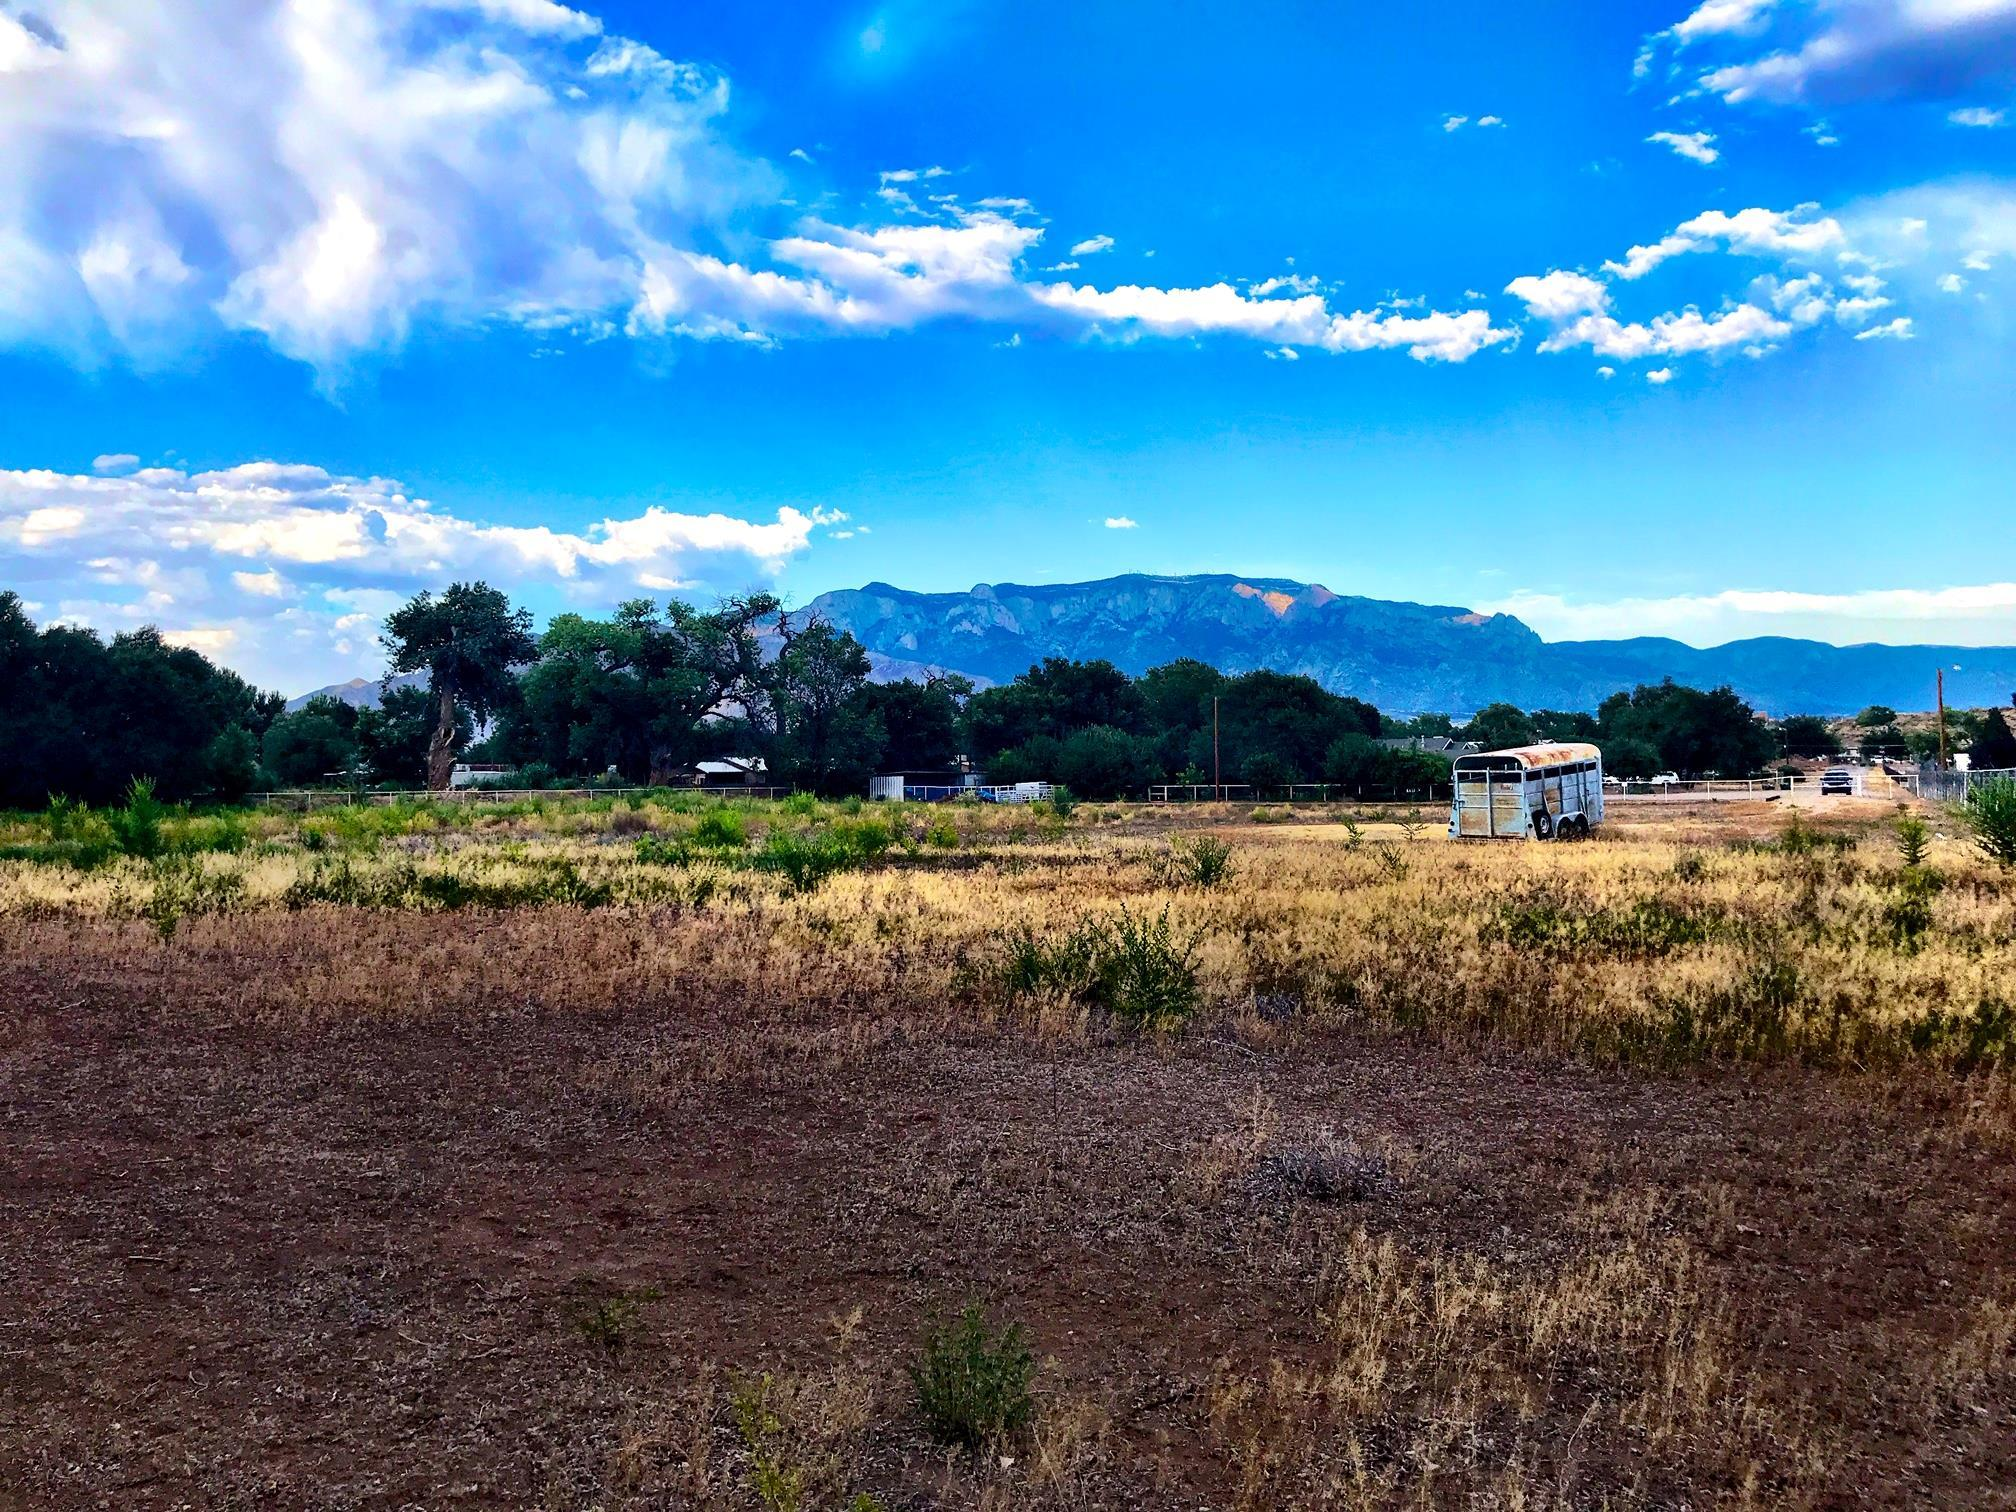 101 FLOWERS Road Property Photo - Albuquerque, NM real estate listing